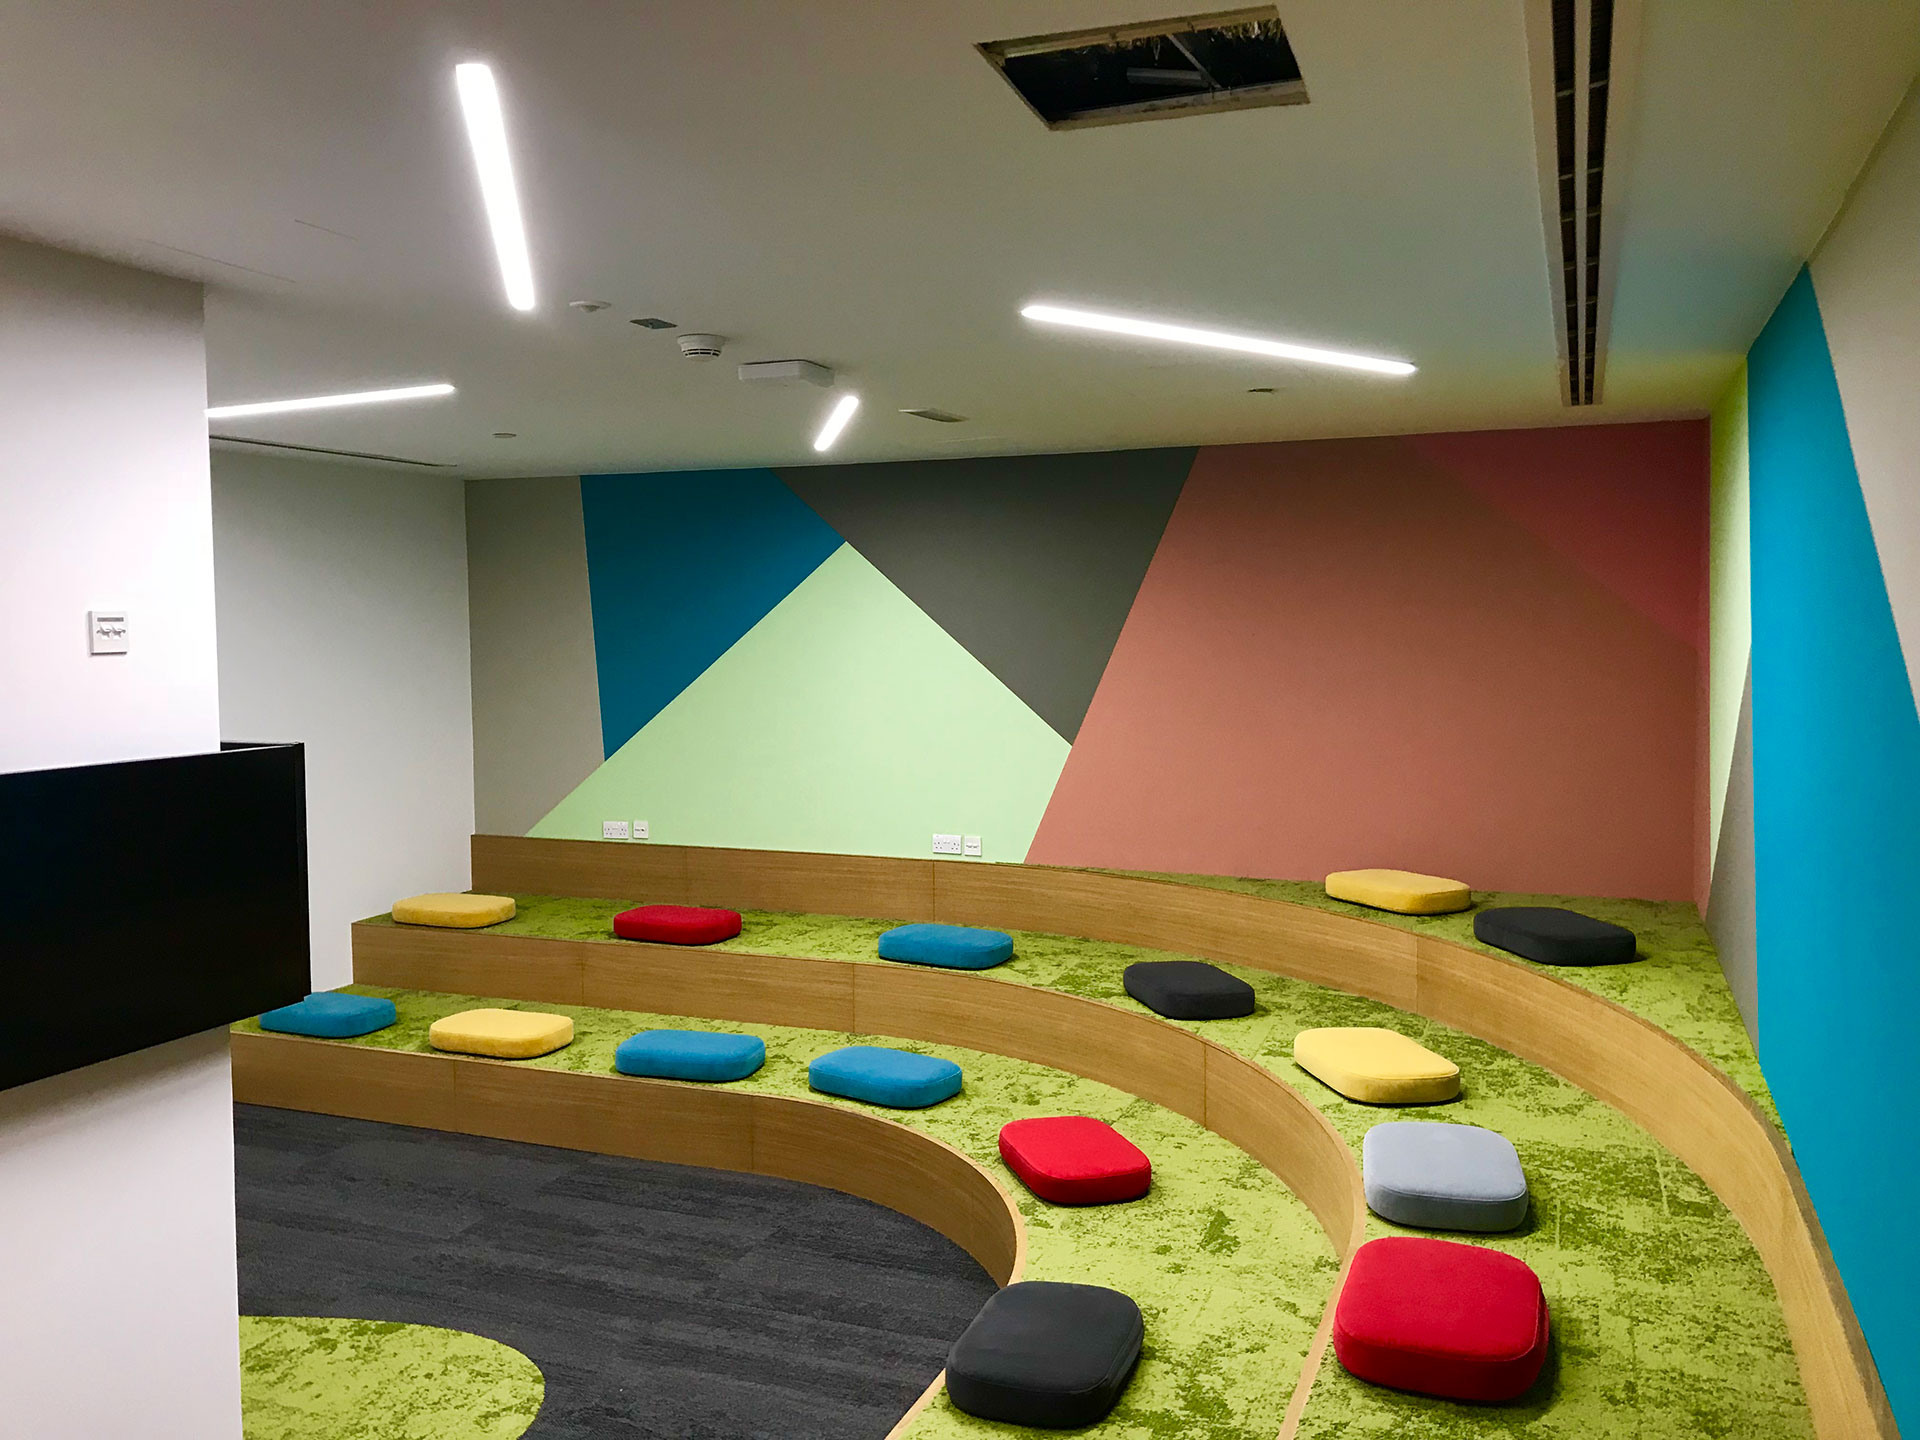 Dewa S New Office Featured Online With Commercial Interior Design